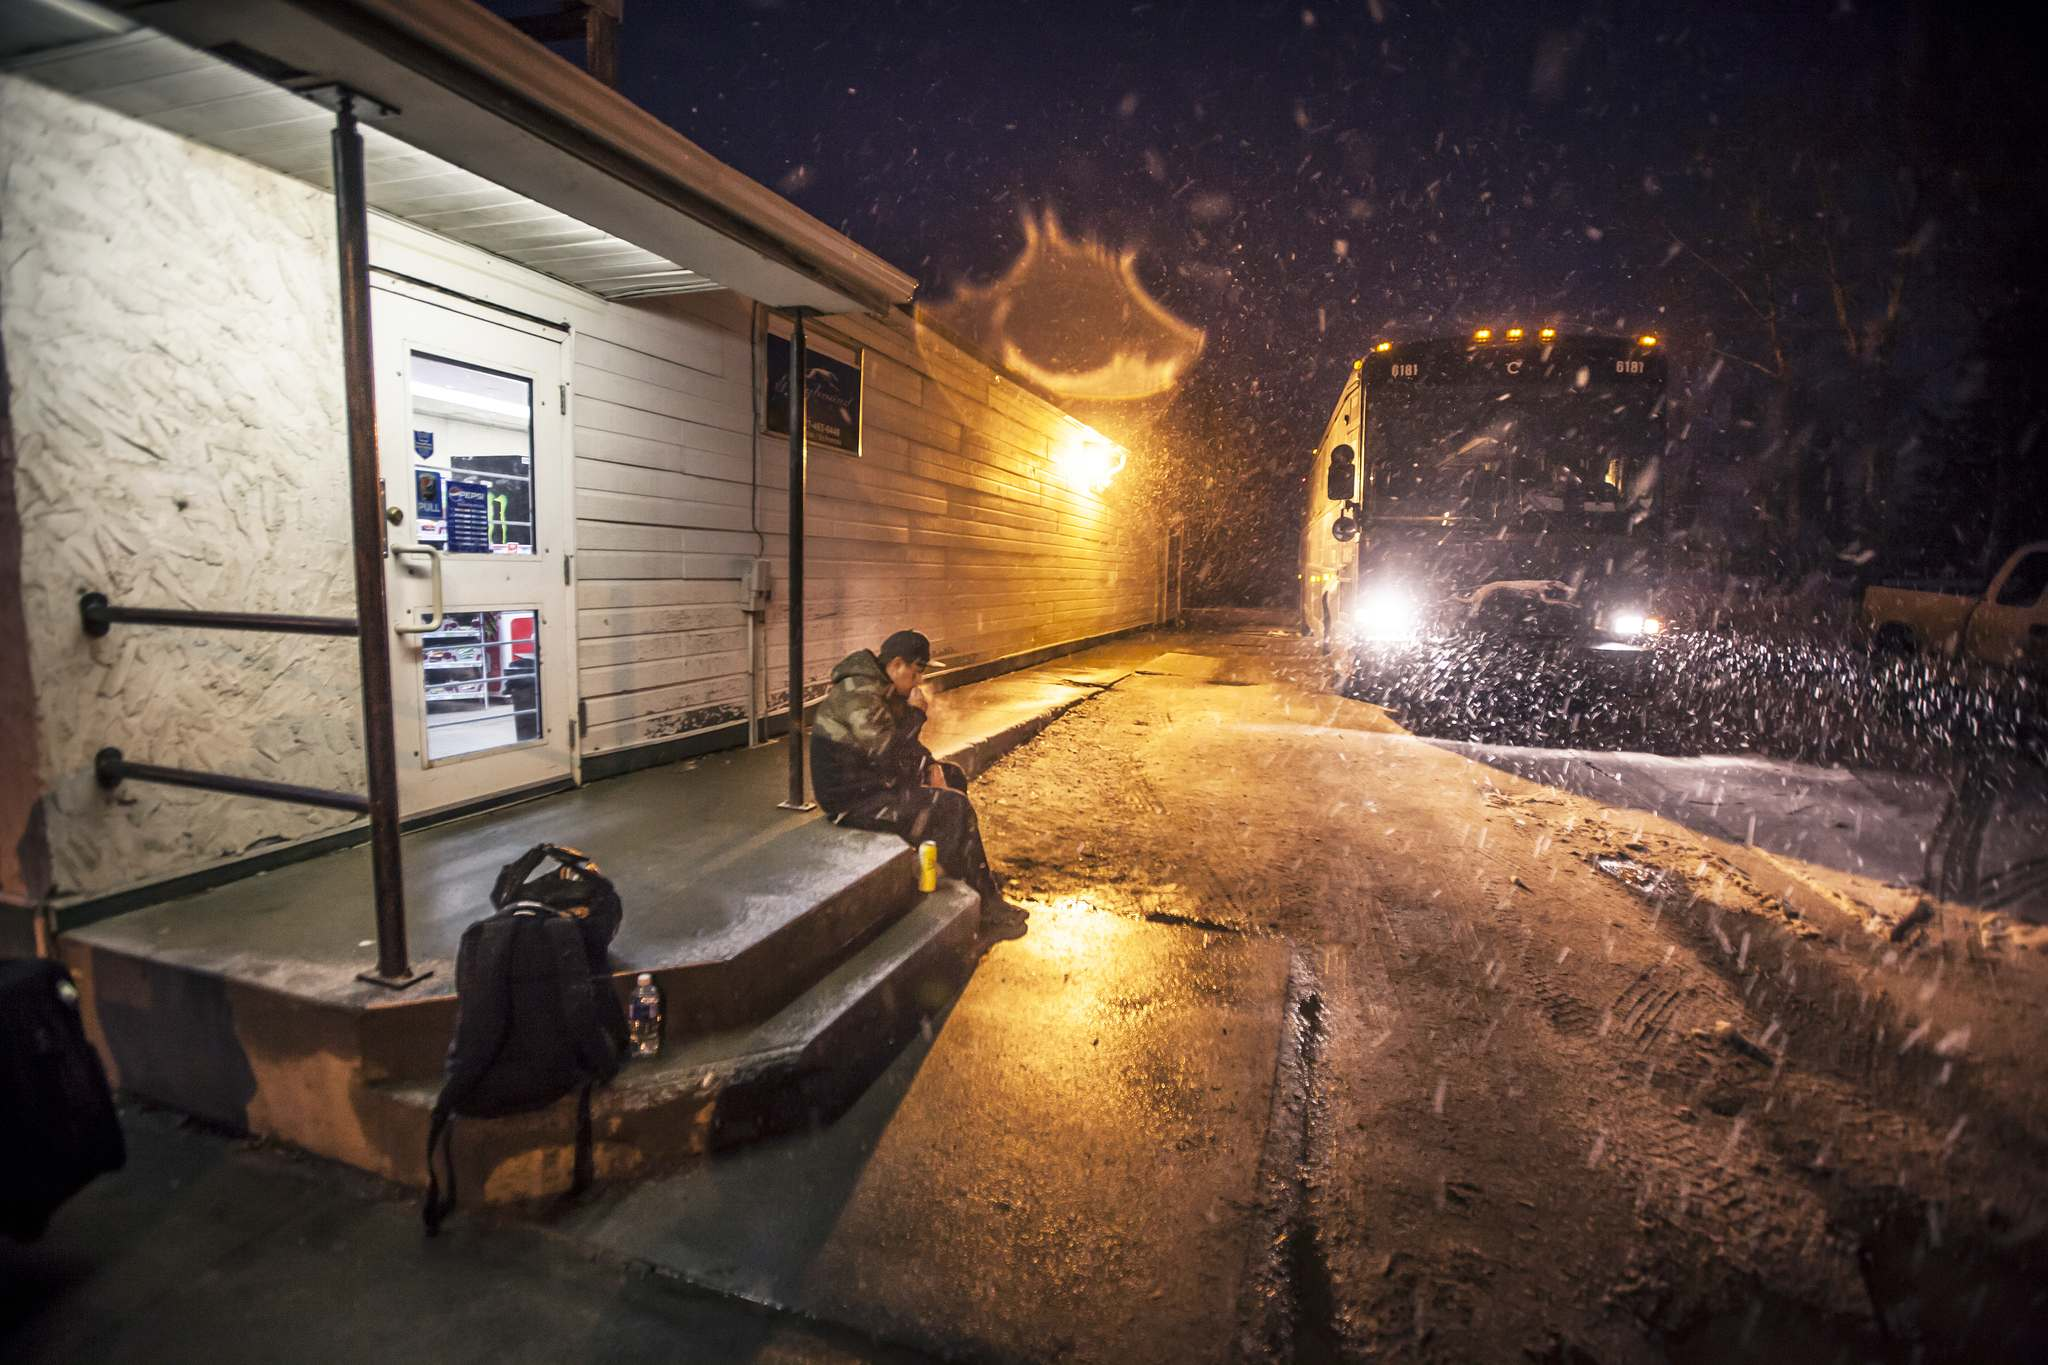 Justin Spence, who is headed to Thompson and Nelson House via The Pas, waits outside the Creighton Saskatchewan convenience store that acts as Flin Flon's Greyhound depot.</p>